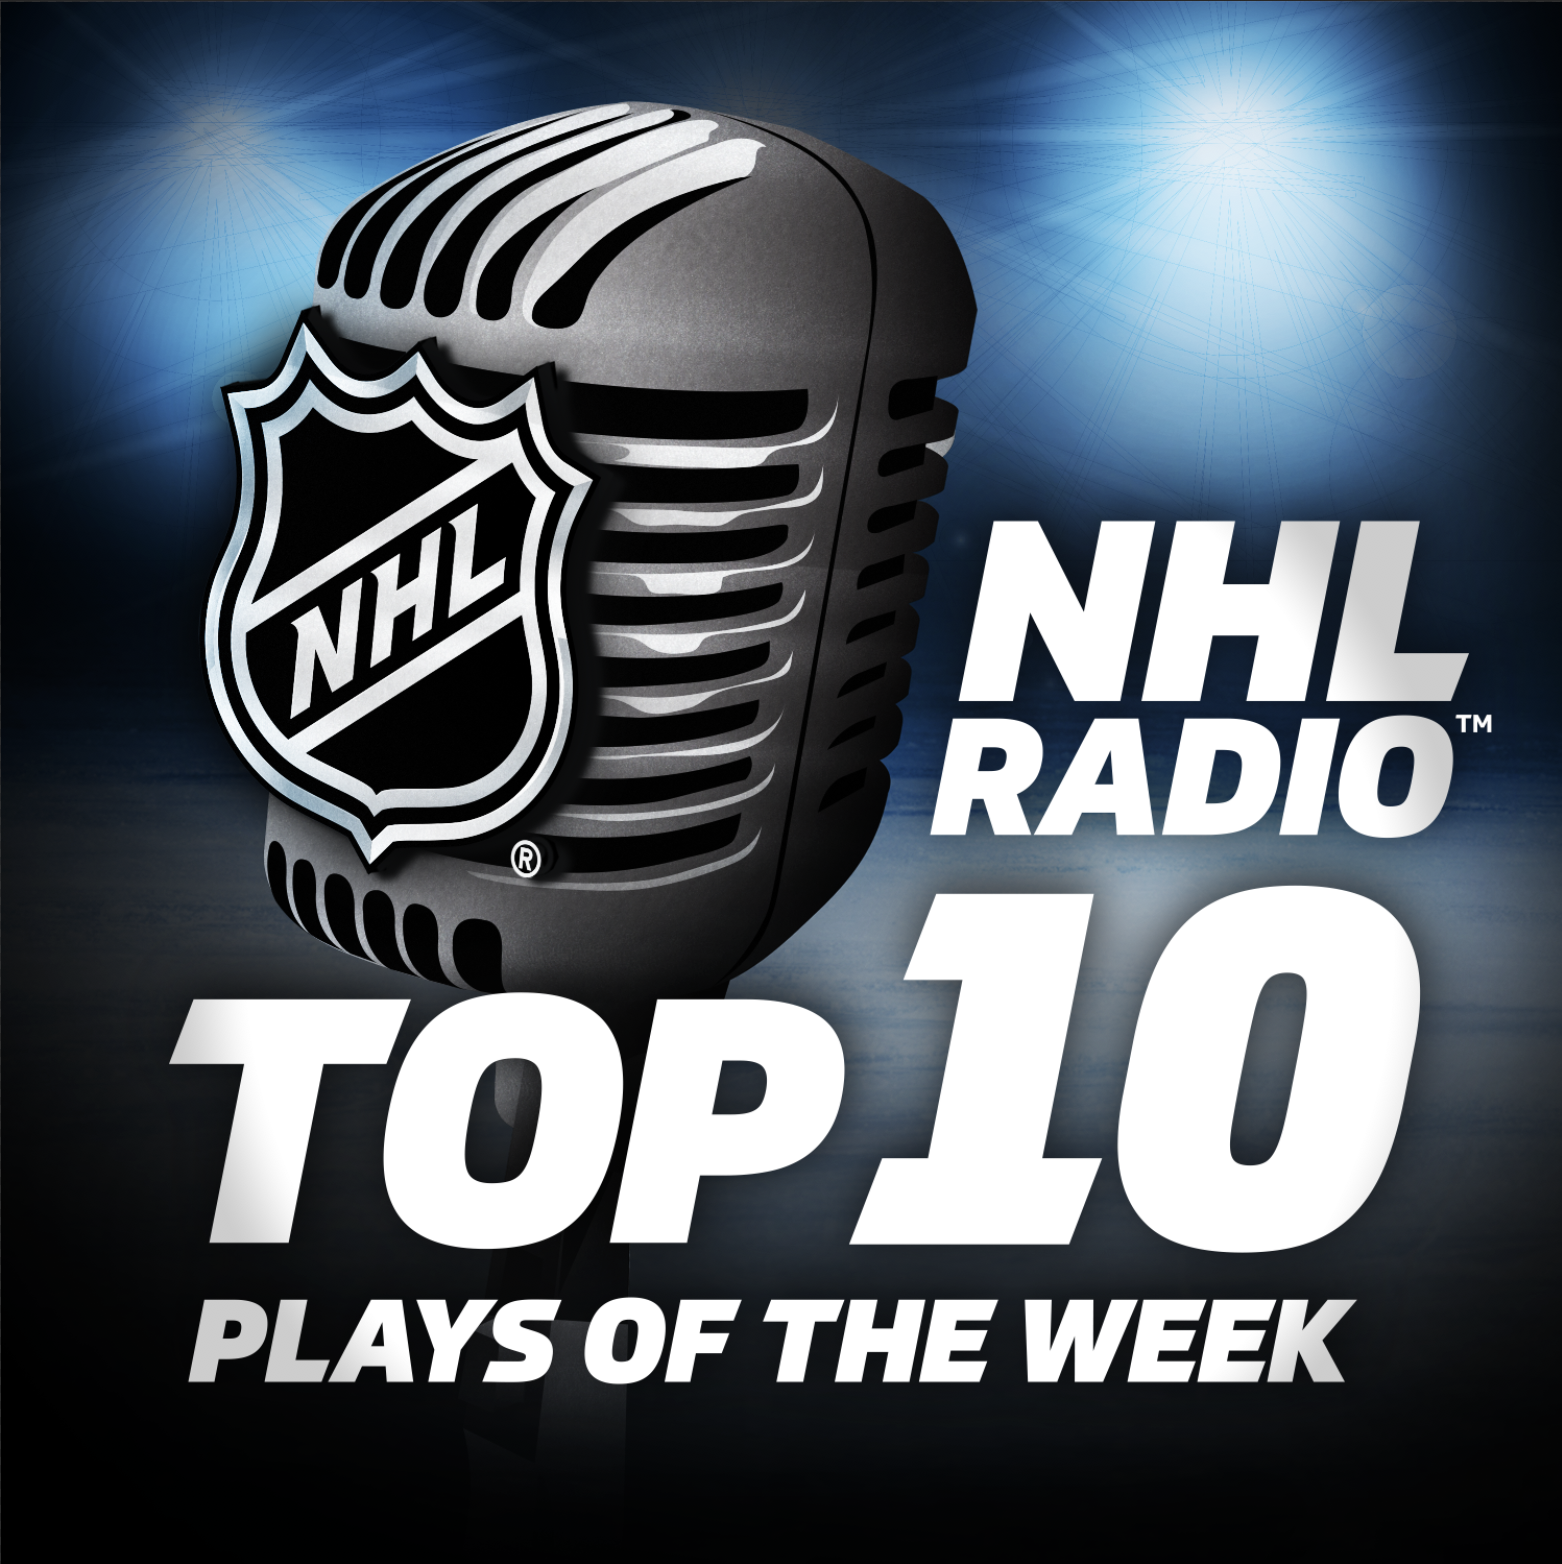 NHL RADIO Top 10 Plays of the Week (Week Ending Jan. 5)